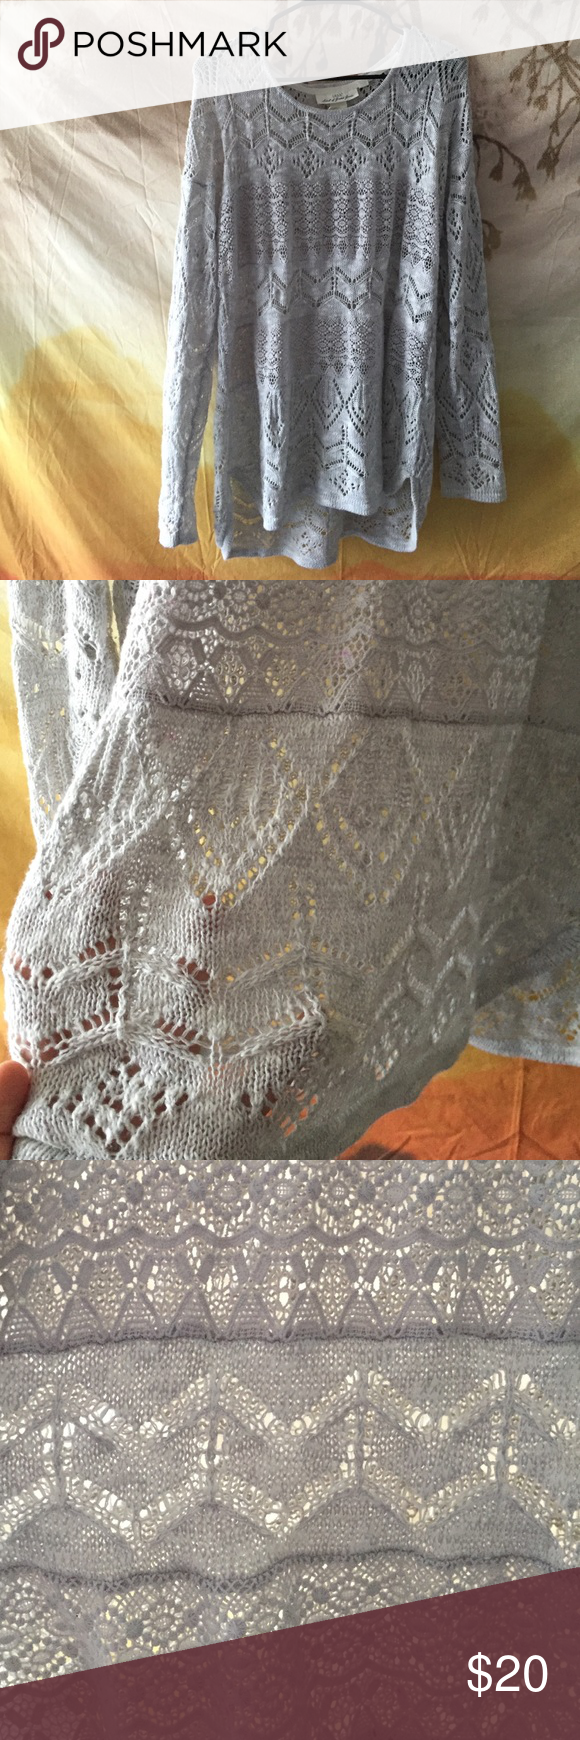 Gray lace sweater Medium gray loosing fitting lace sweater from Pac Sun! PacSun Sweaters